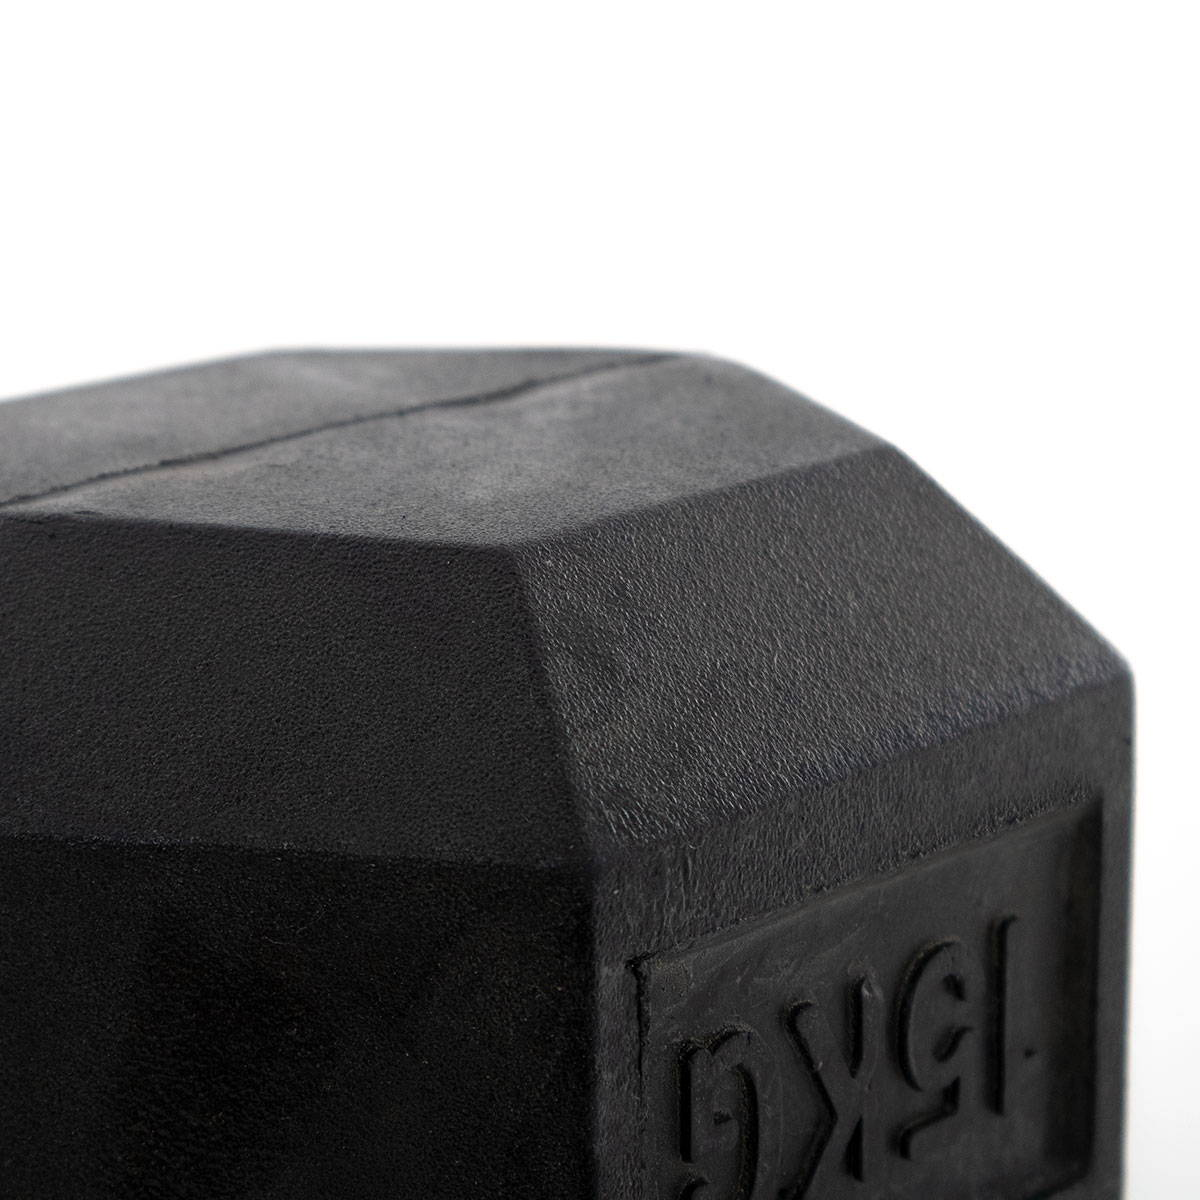 SMAI Rubber Hex Dumbbell commercial grade durability